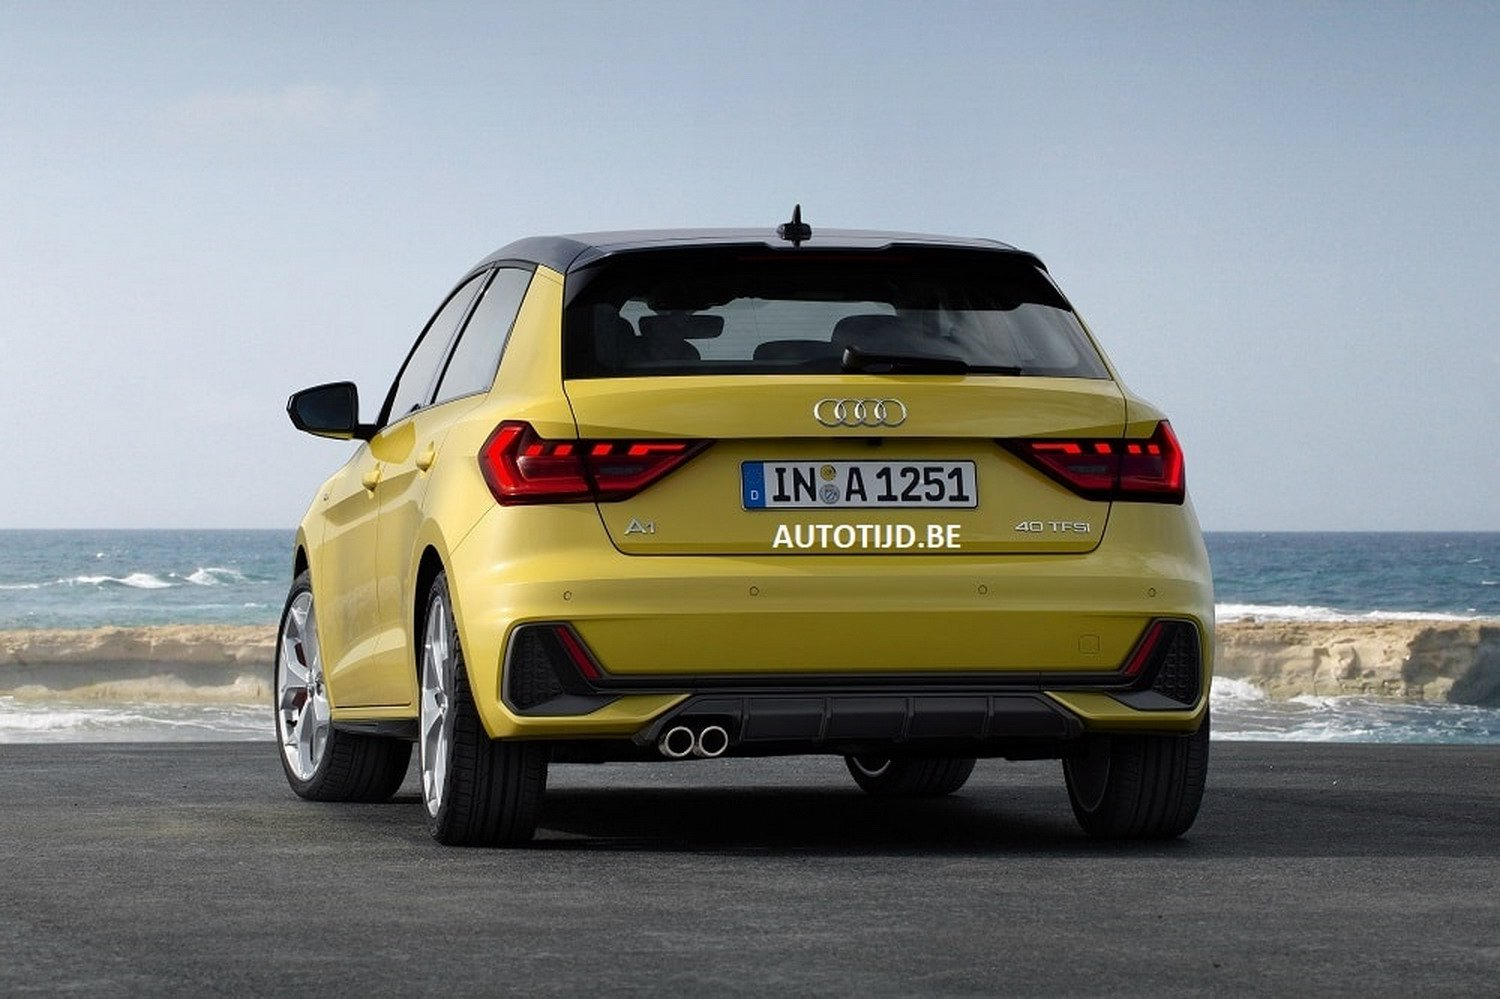 2019 Audi A1 Leaked Official Photos Reveal Sporty Design - autoevolution